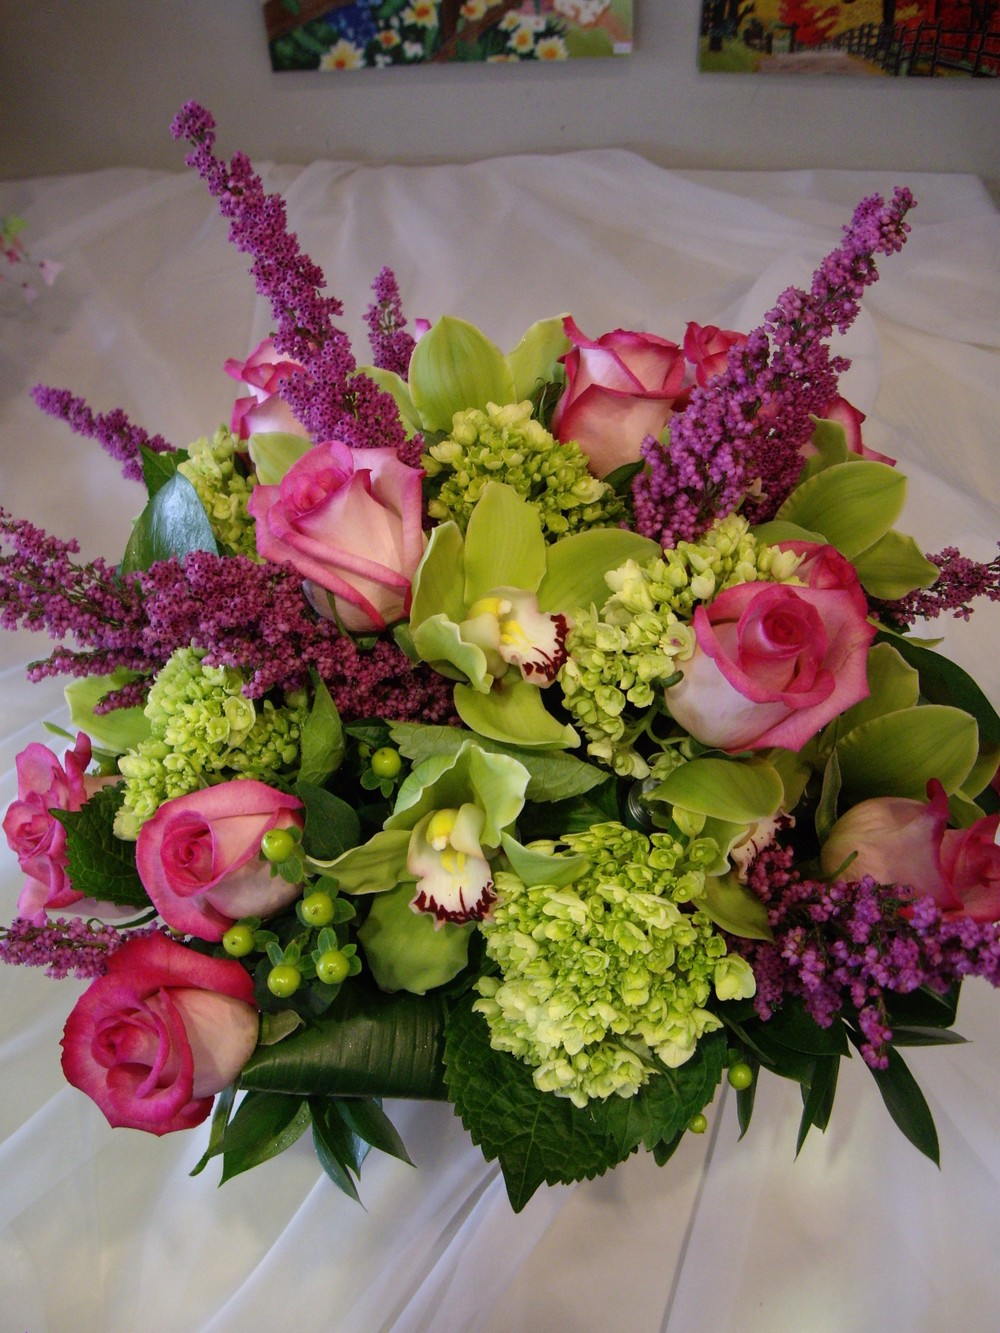 green hydrangea and purple cezanne roses.JPG